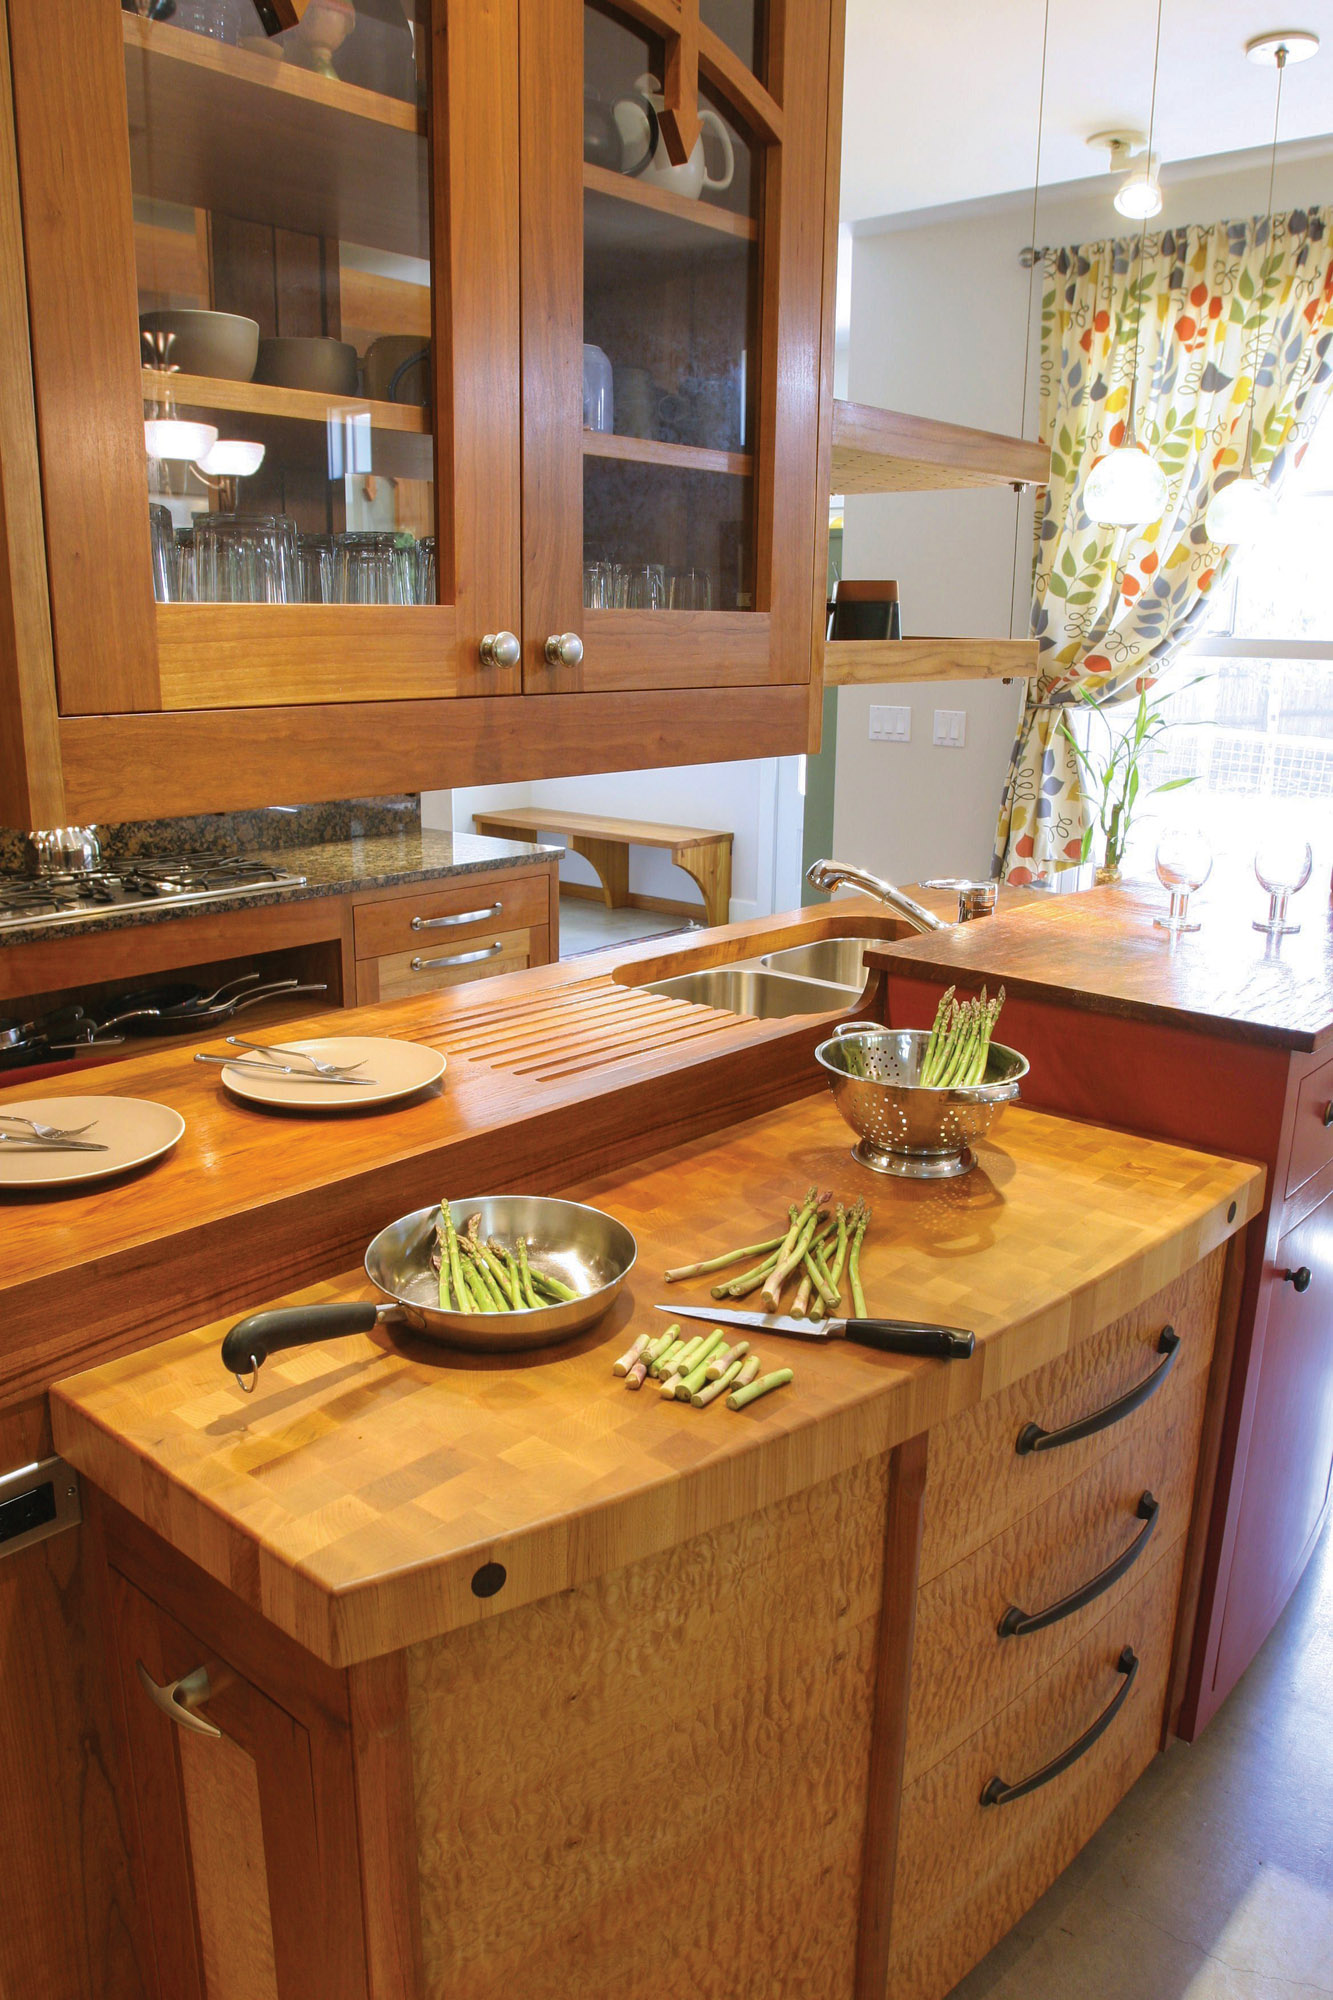 An end-grain butcher-block work station alongside a face-grain drainboard countertop, both made by DeVos Woodworking.